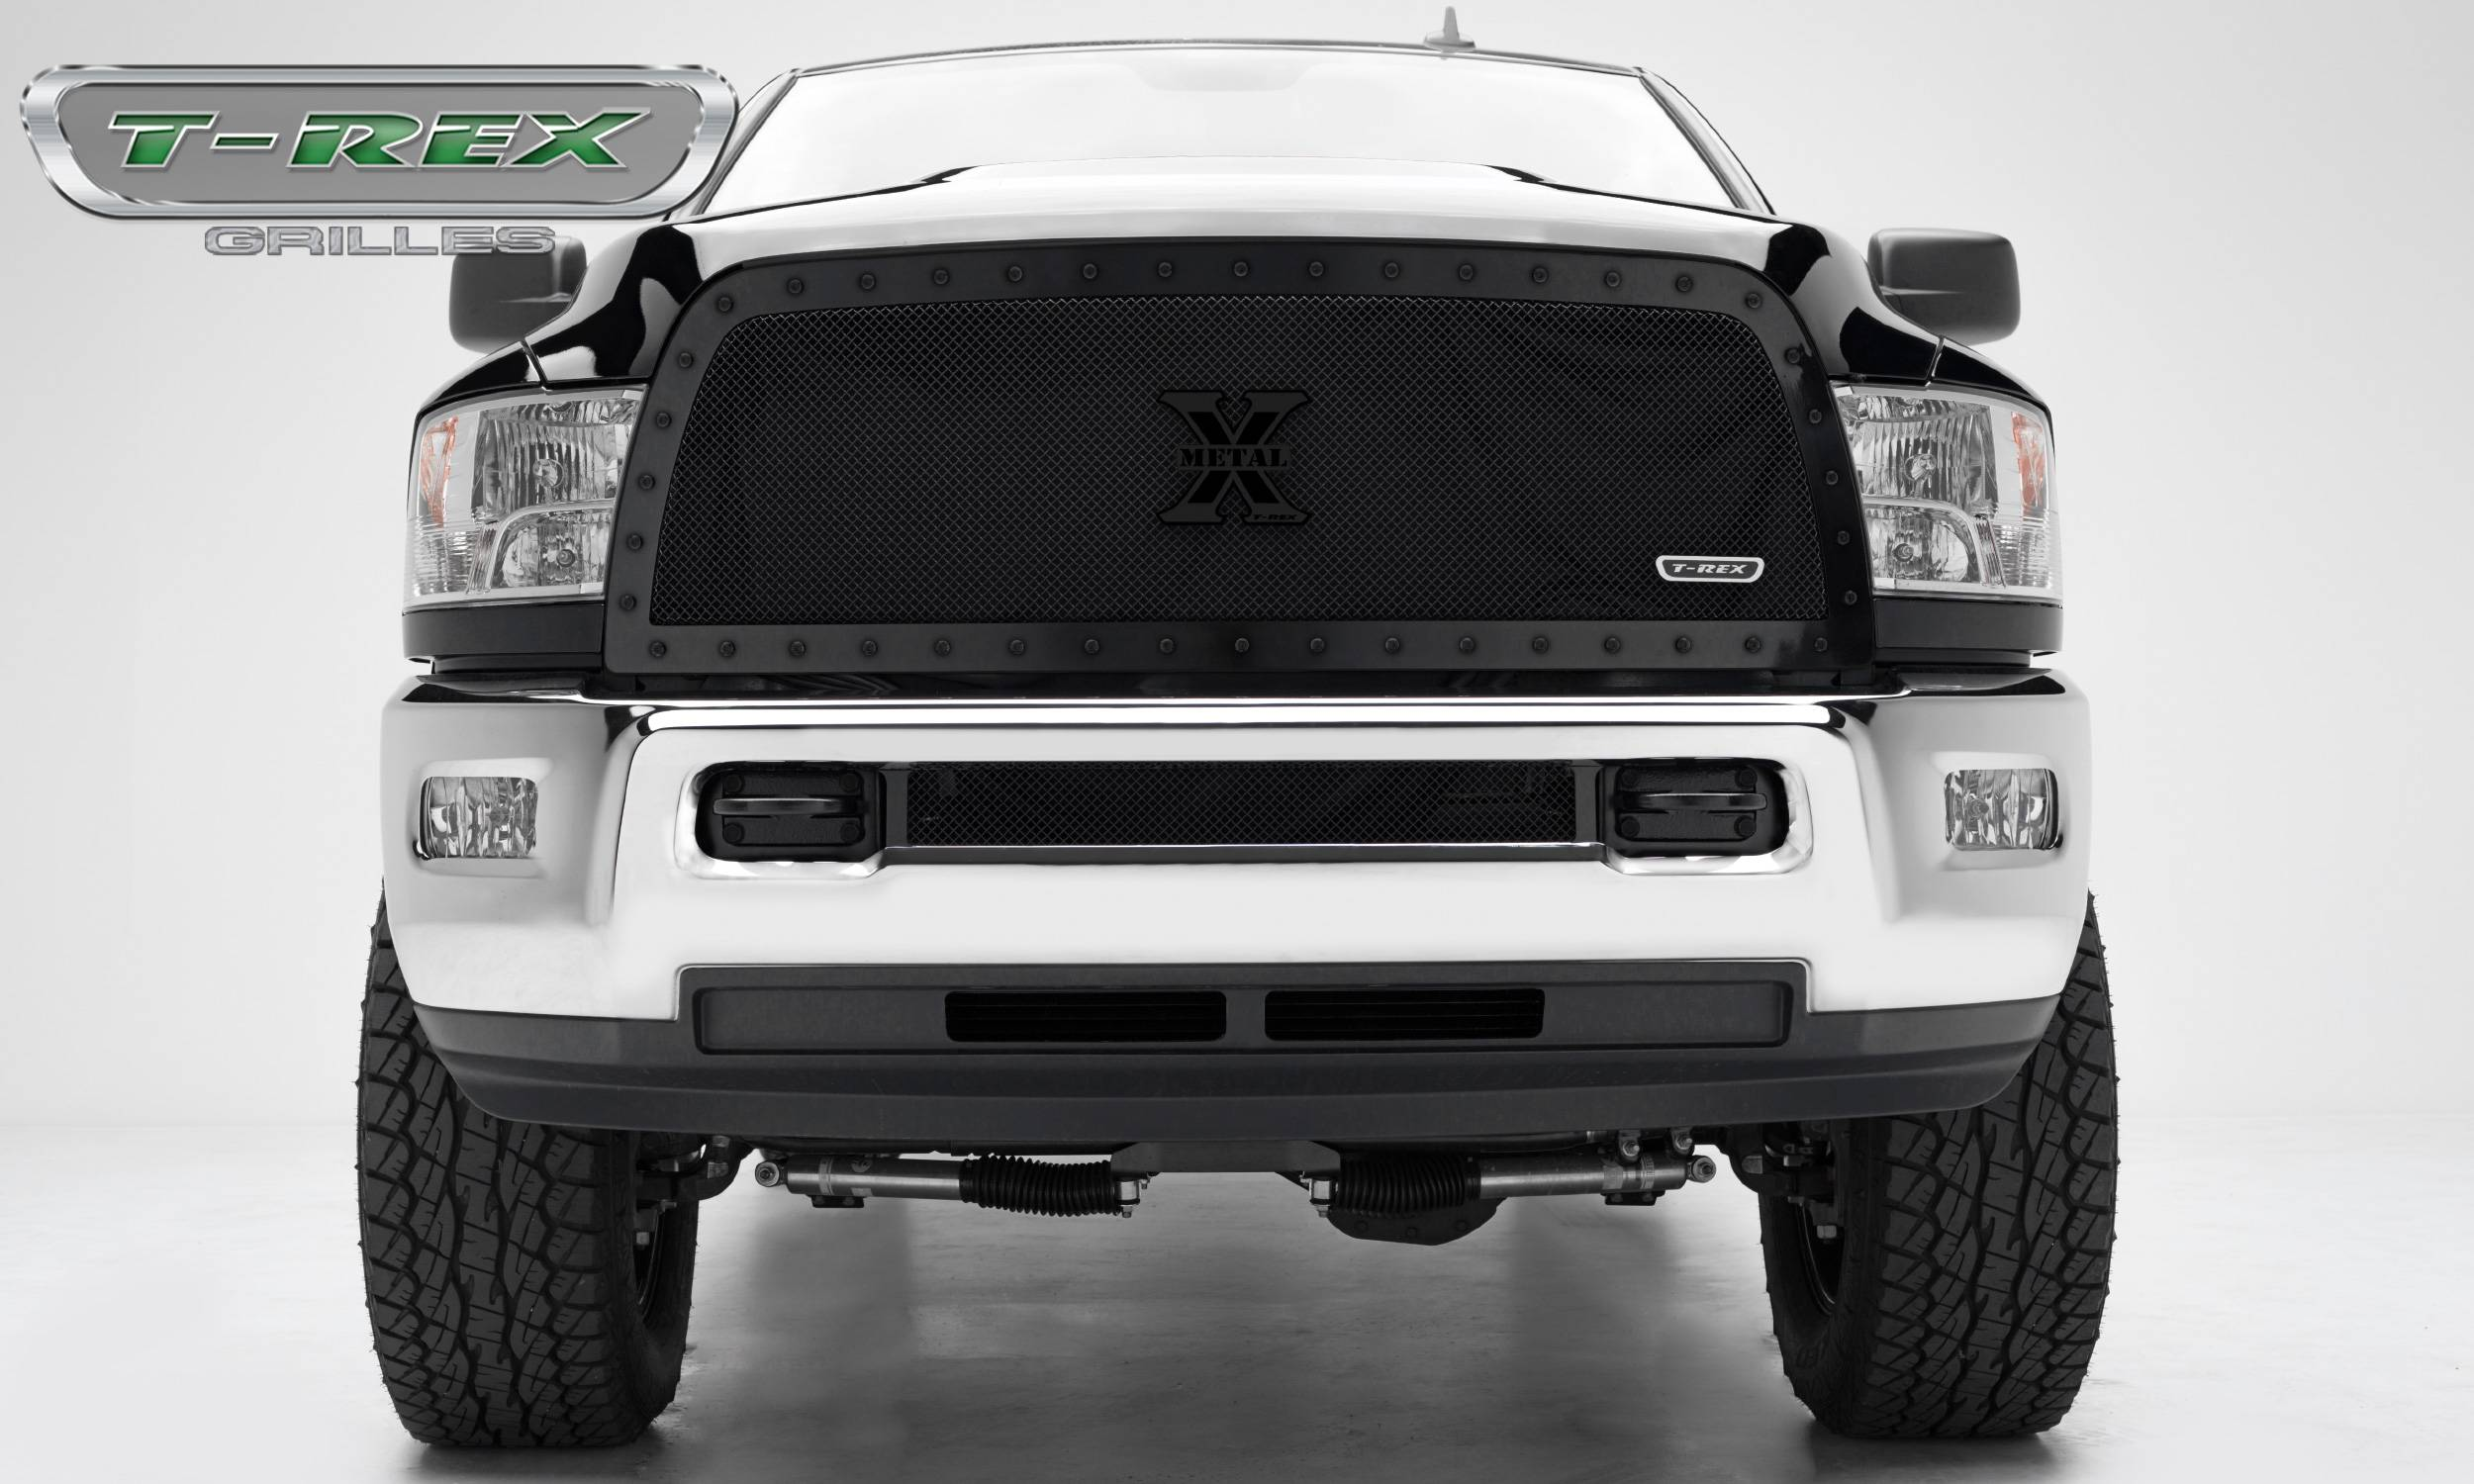 T-REX Grilles - Dodge Ram PU 2500 / 3500 X-METAL Series - Studded Main Grille - Custom 1 Pc Full Opening  - ALL Black - Pt # 6714521-BR